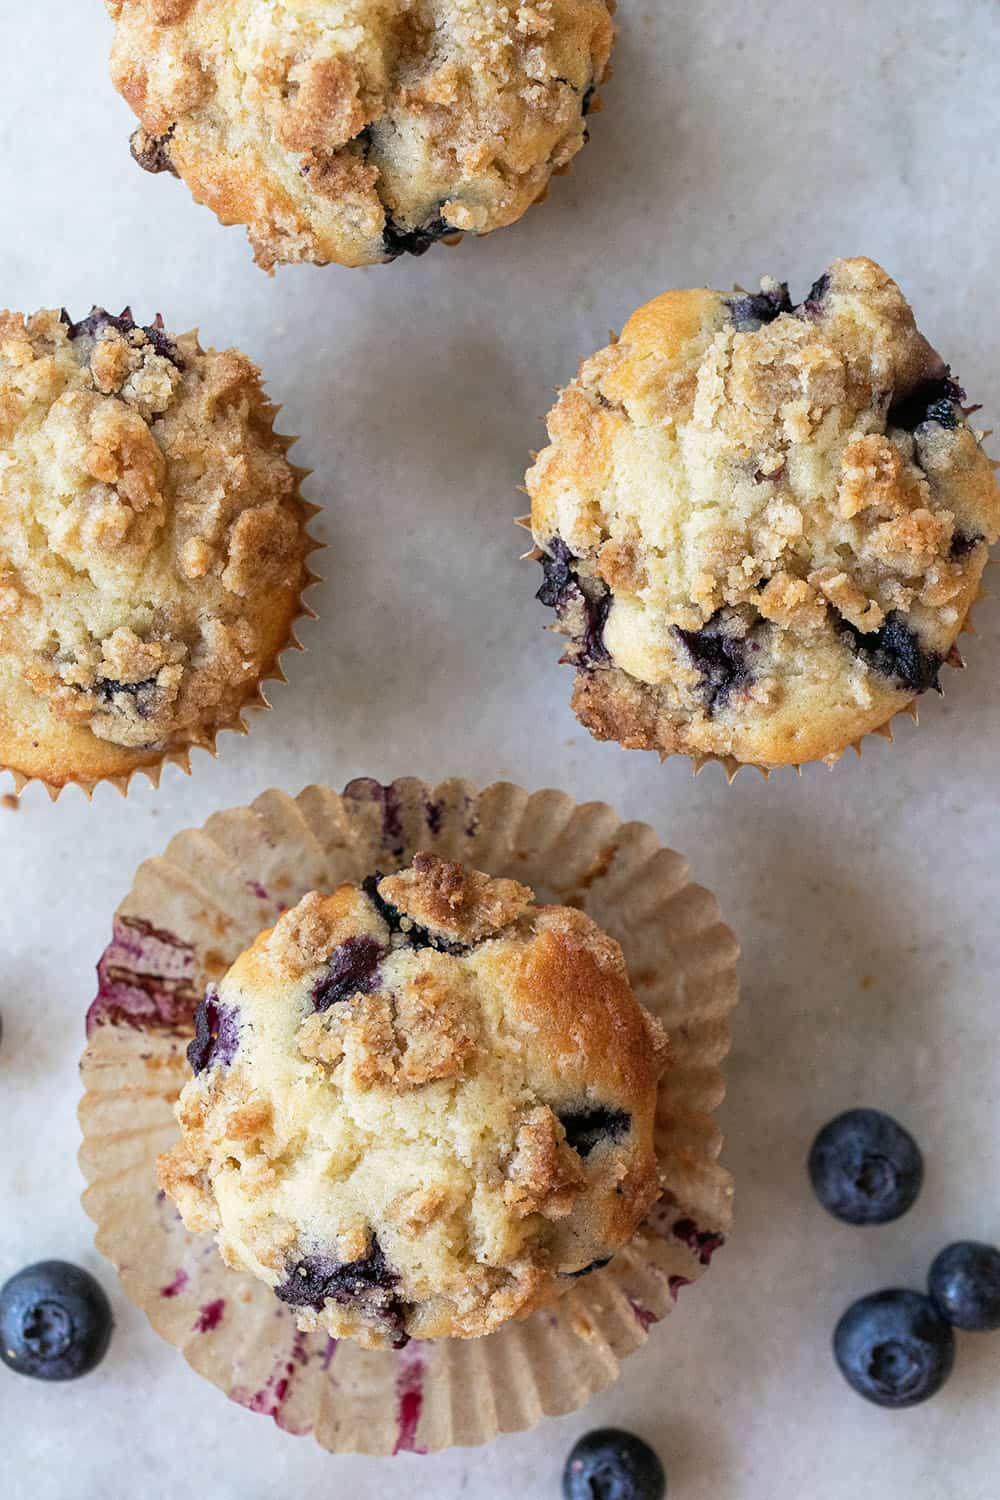 homemade muffins with berries